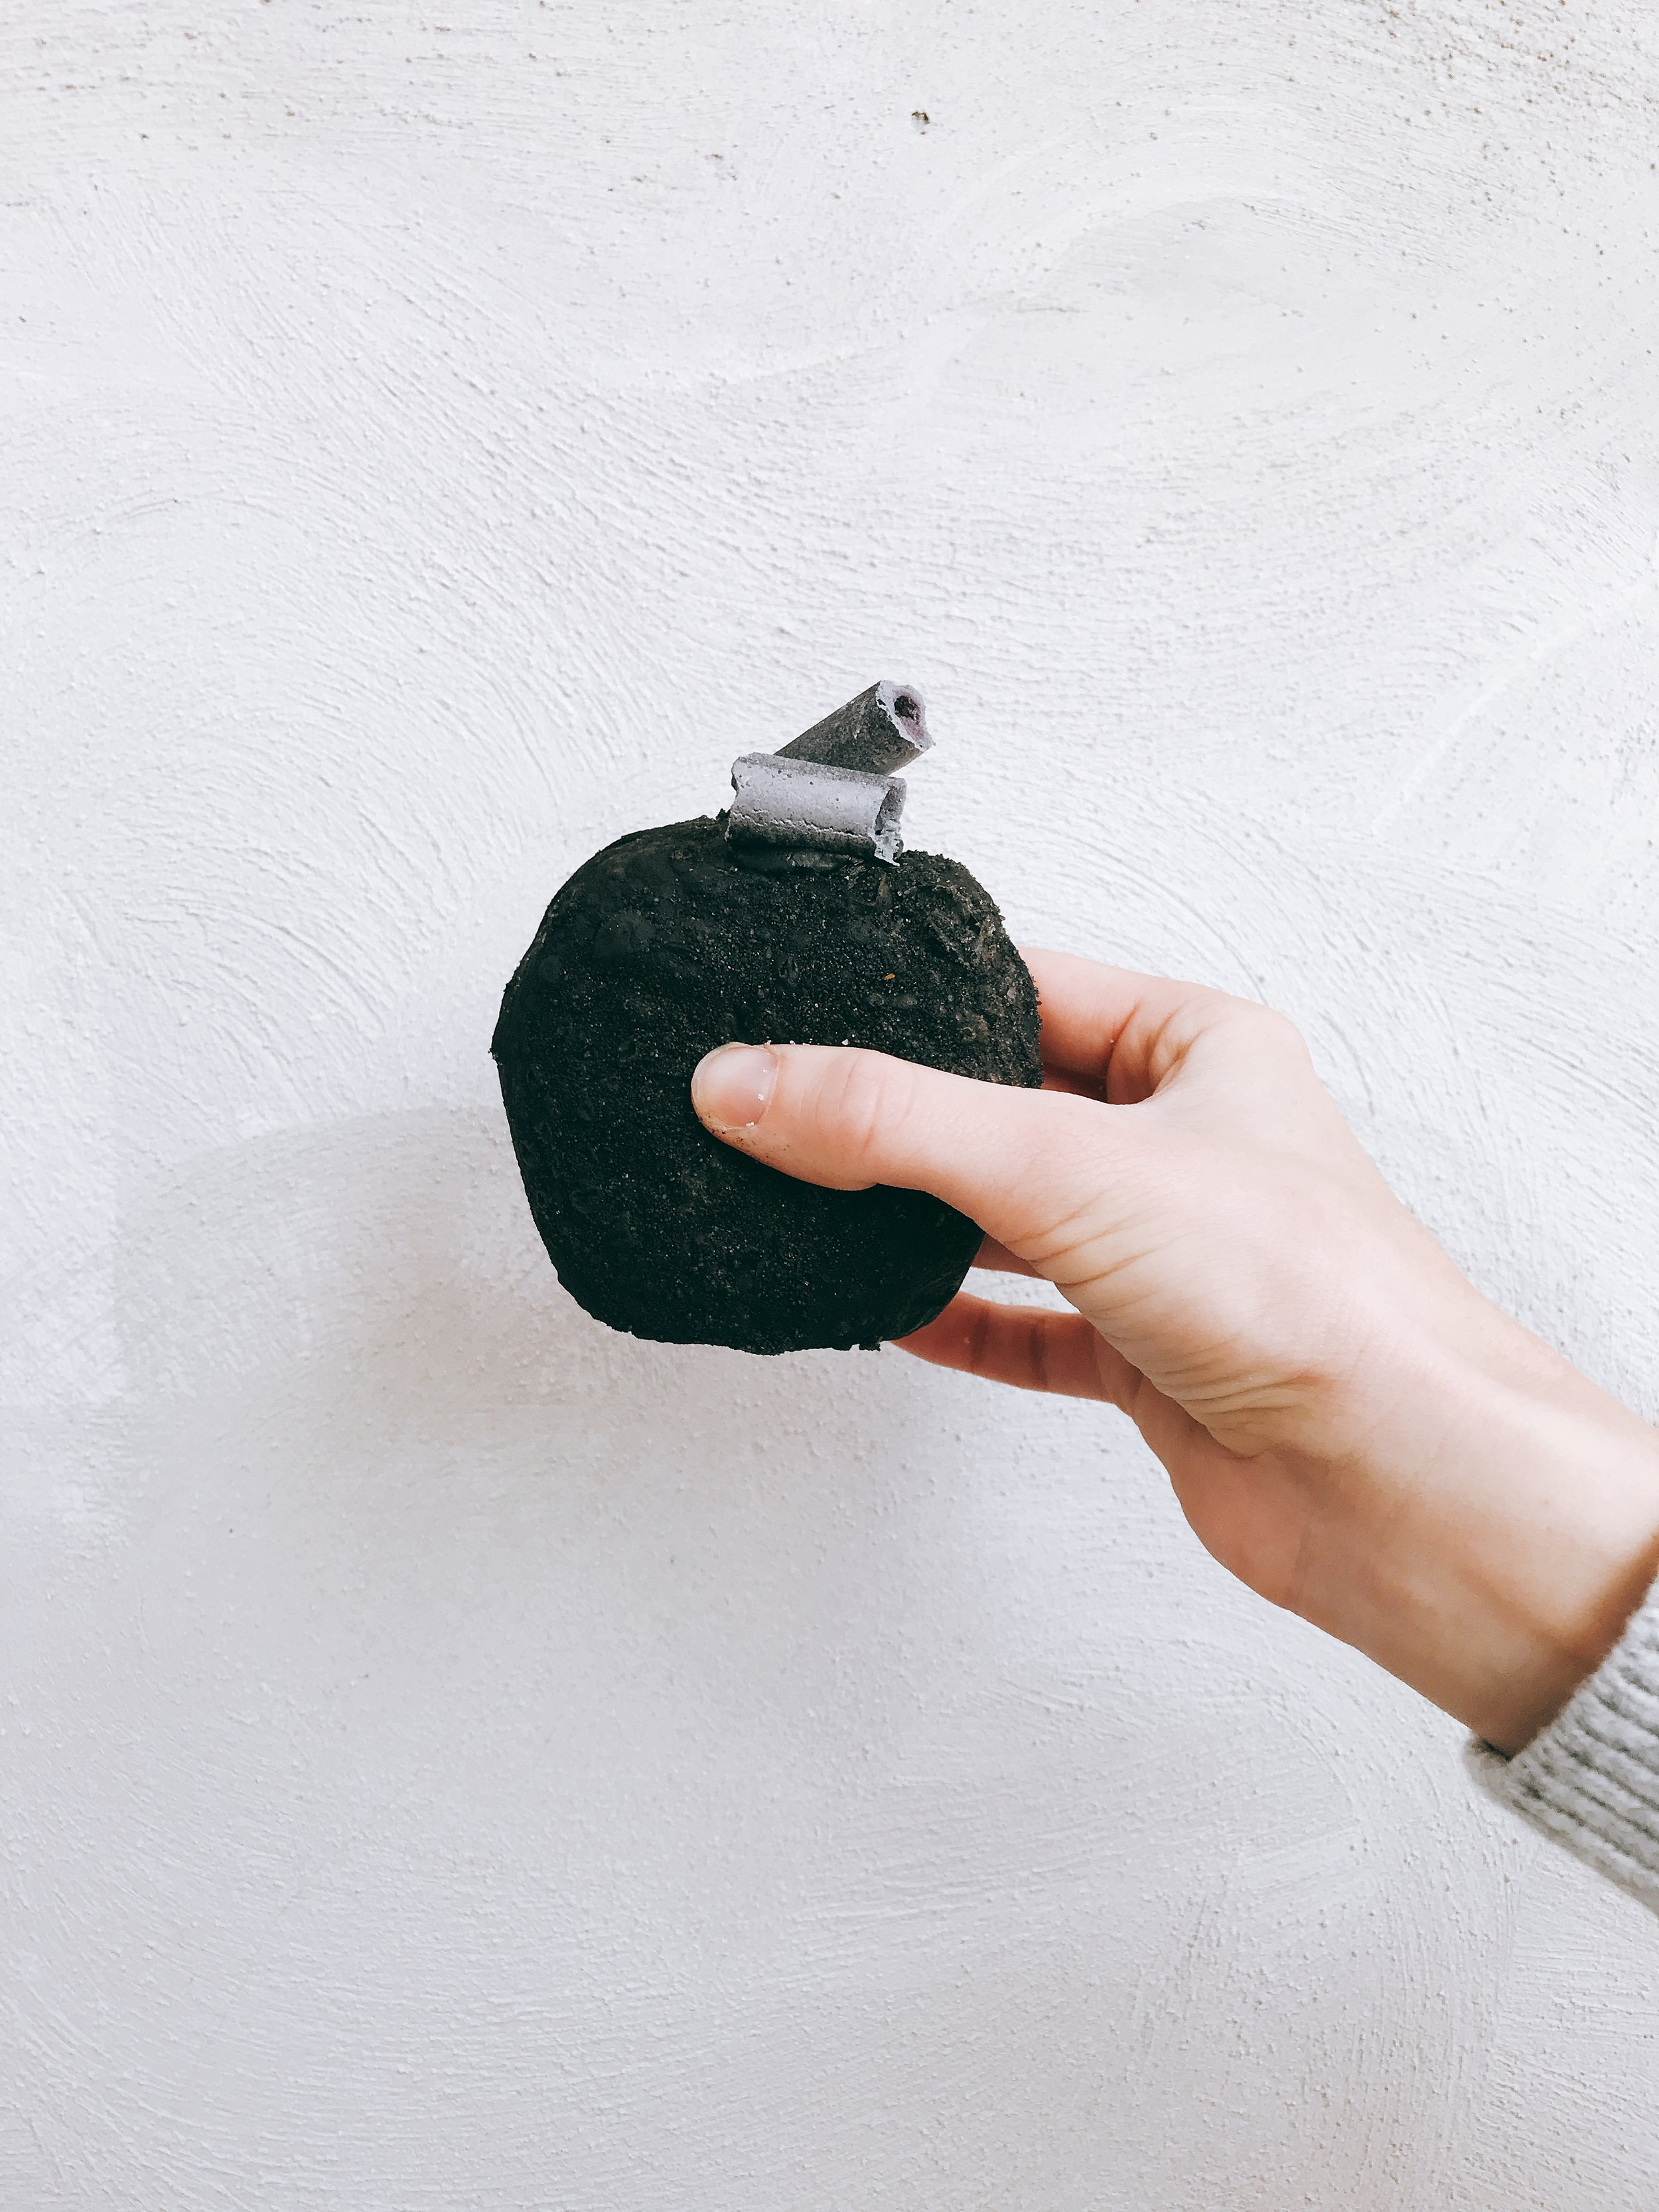 TRIPLE BLACK DONUT - SQUID INK BRIOCHE, BLACK SESAME CREME PATISSIER, CHARCOAL MERINGUE, ROLLED IN ACTIVATED CHARCOAL SUGAR